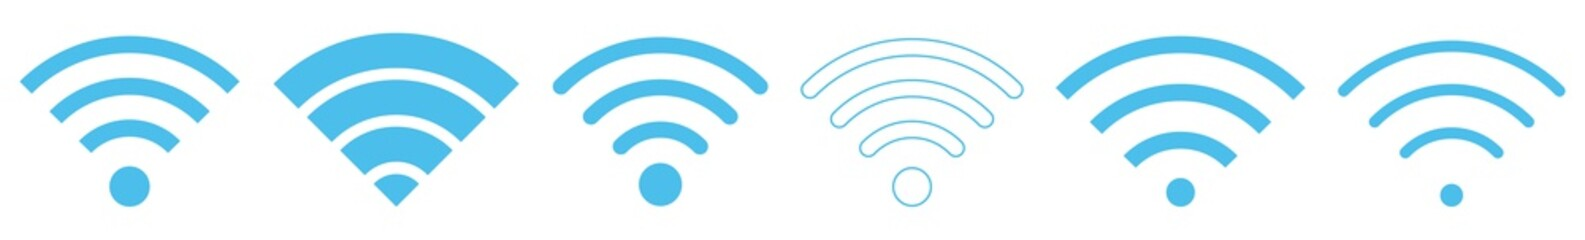 Wireless Blue | Internet Connection | Signal Icon | Variations Fototapete